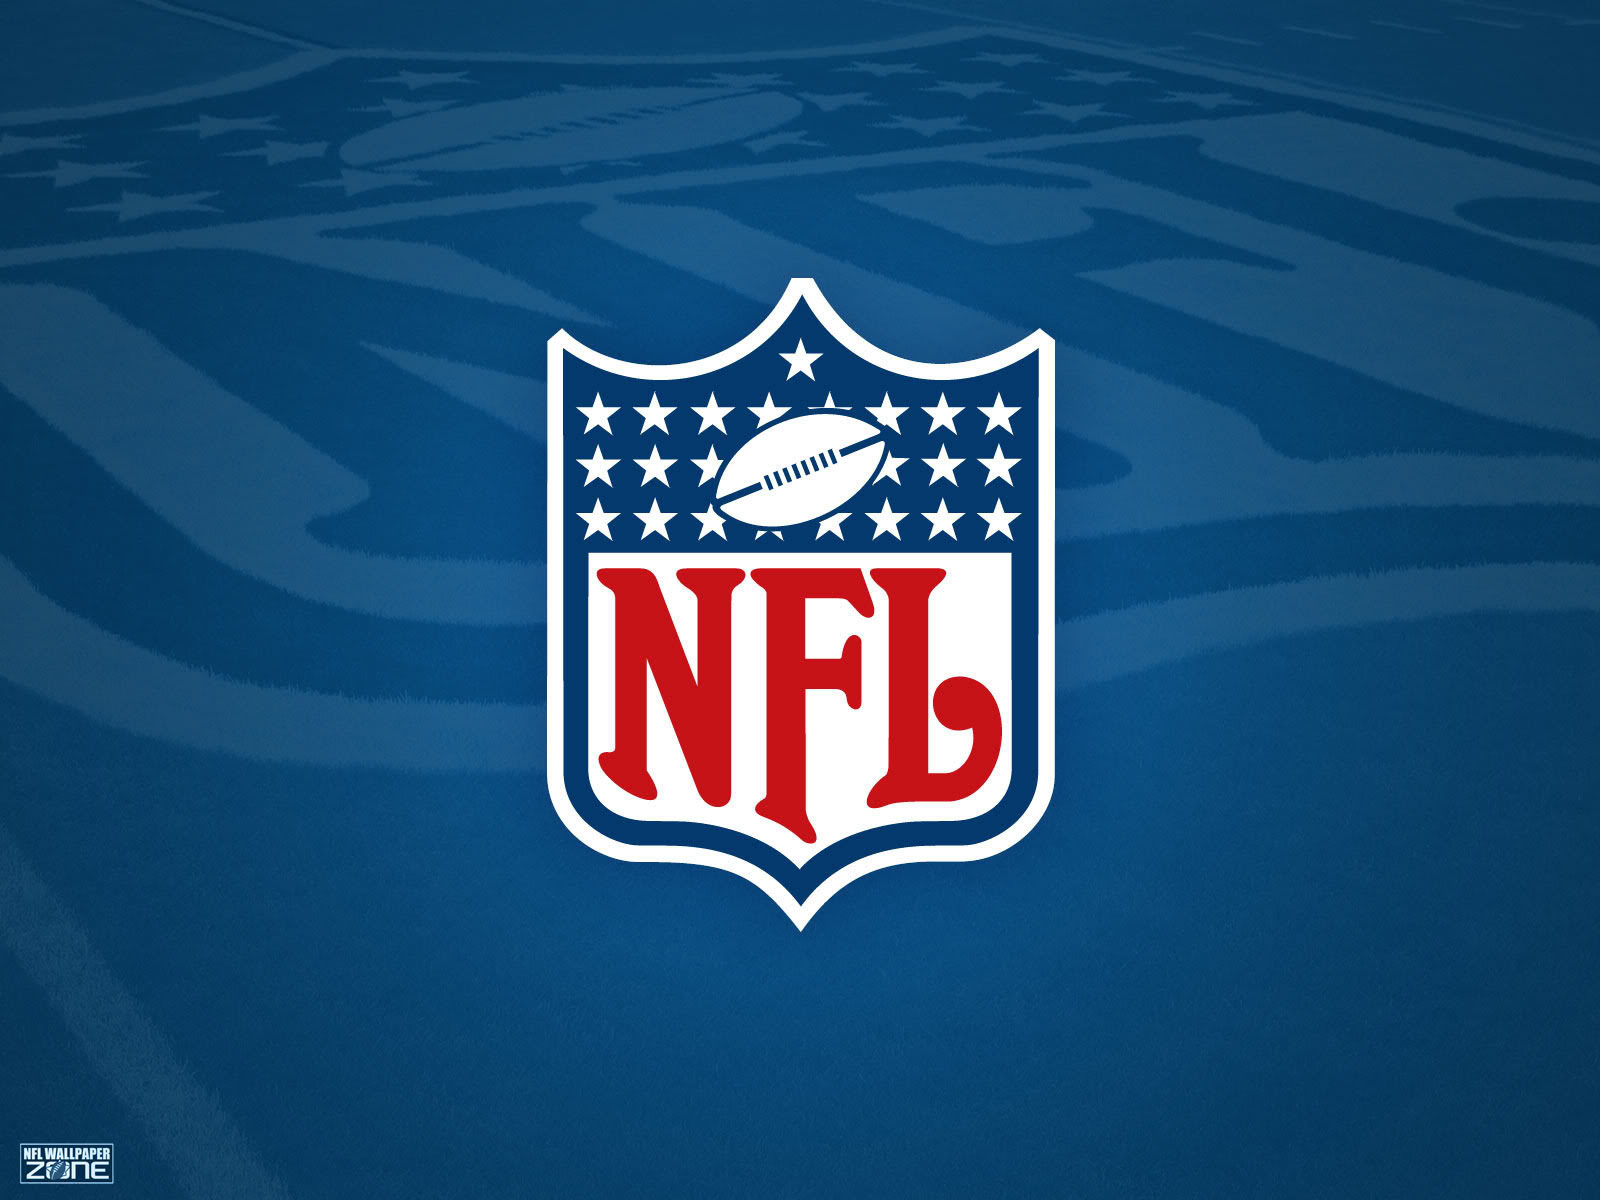 nfl wallpaper 2013 free download wallpaper dawallpaperz